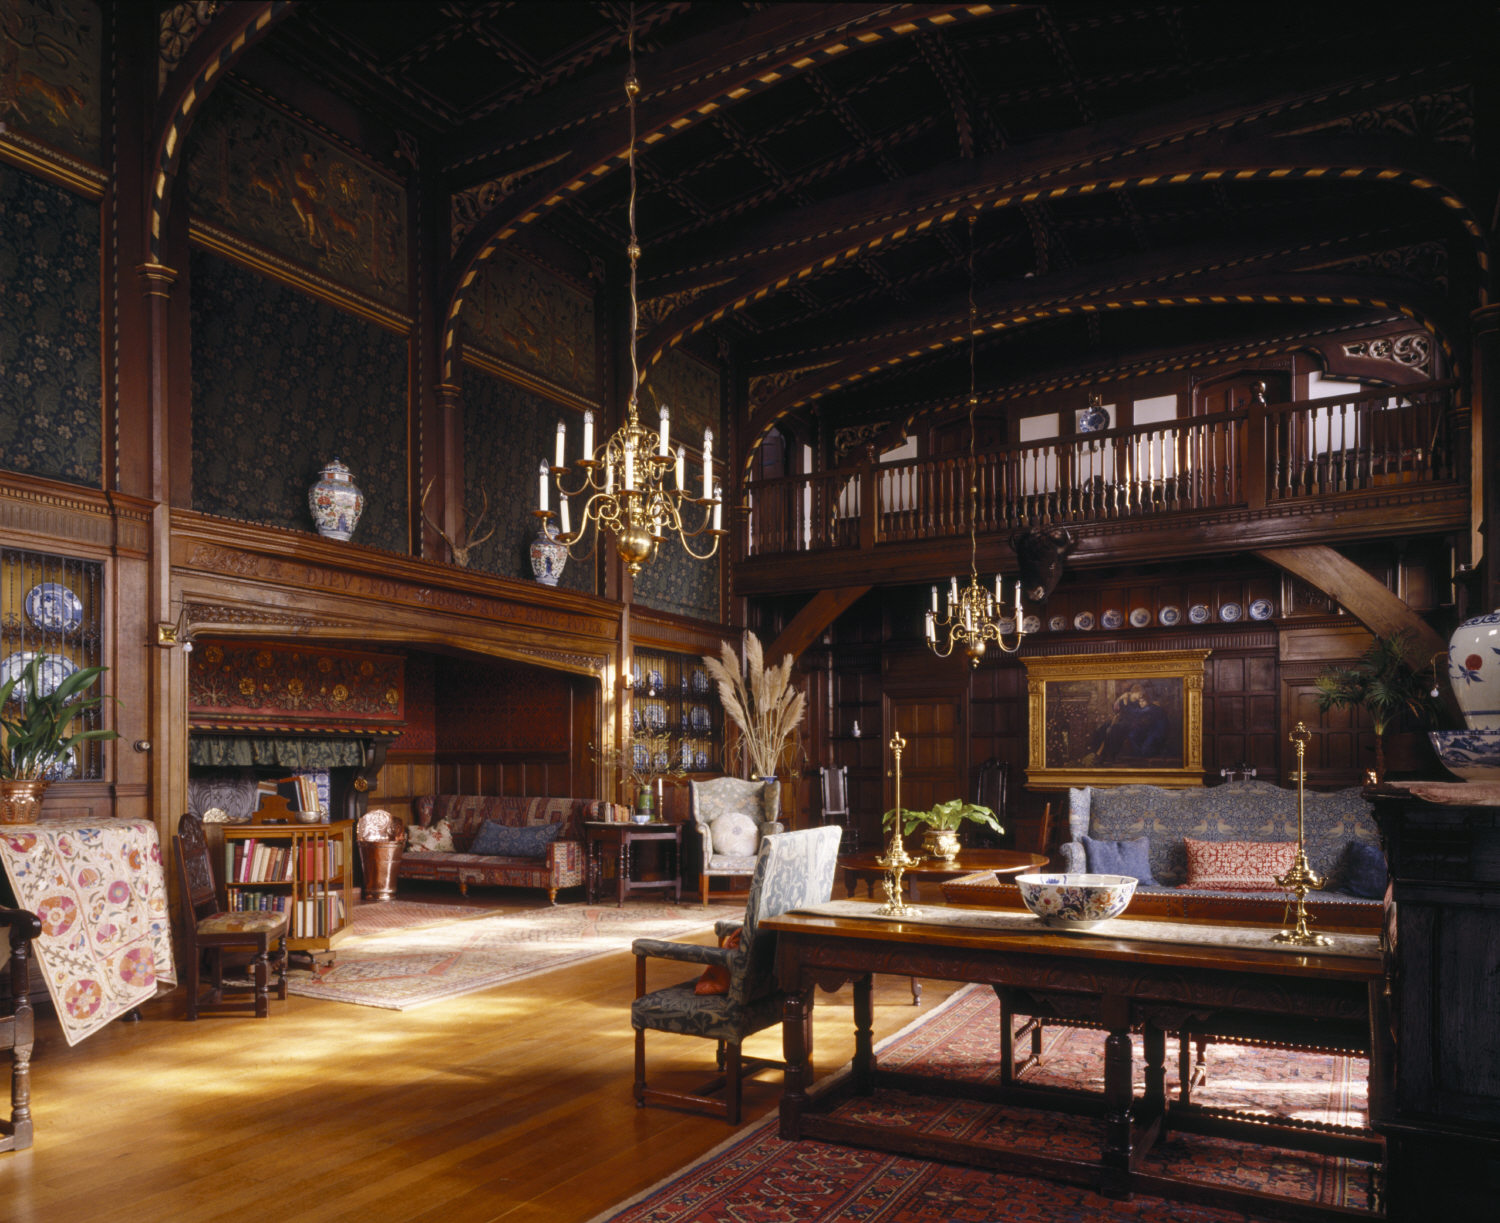 A photograph showing the large, wood-panelled interior of the Great Parlour at Wightwick Manor, Wolverhampton, filled with Arts and Crafts furniture and decorative objects. The wooden ceiling features decorative painting and two large brass chandeliers.